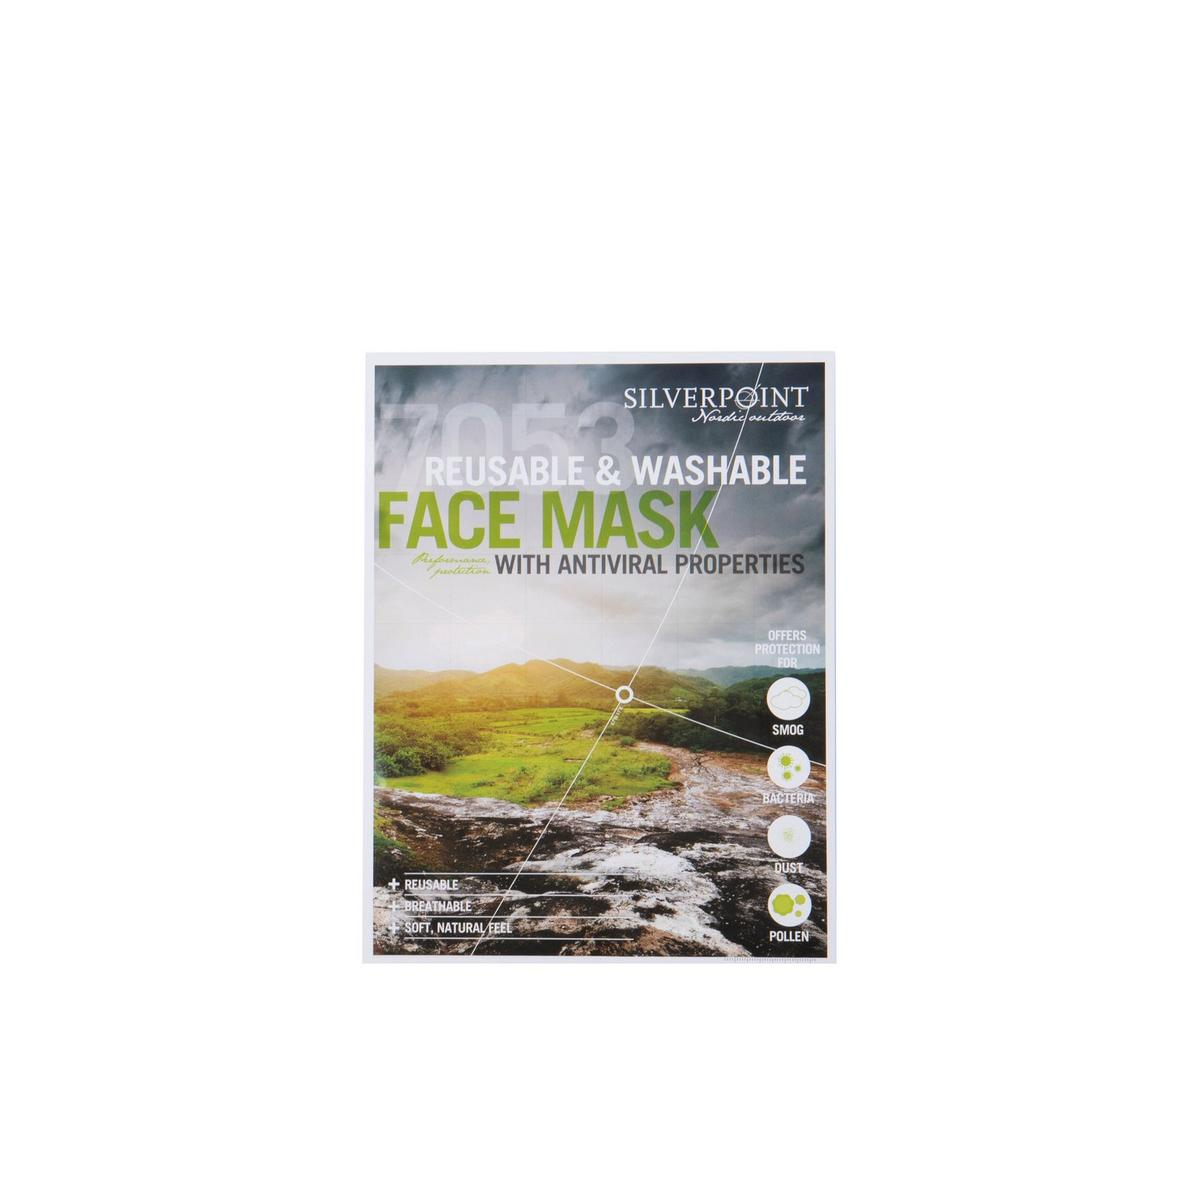 Silverpoint U Silverpoint Antiviral Face Mask - Pink